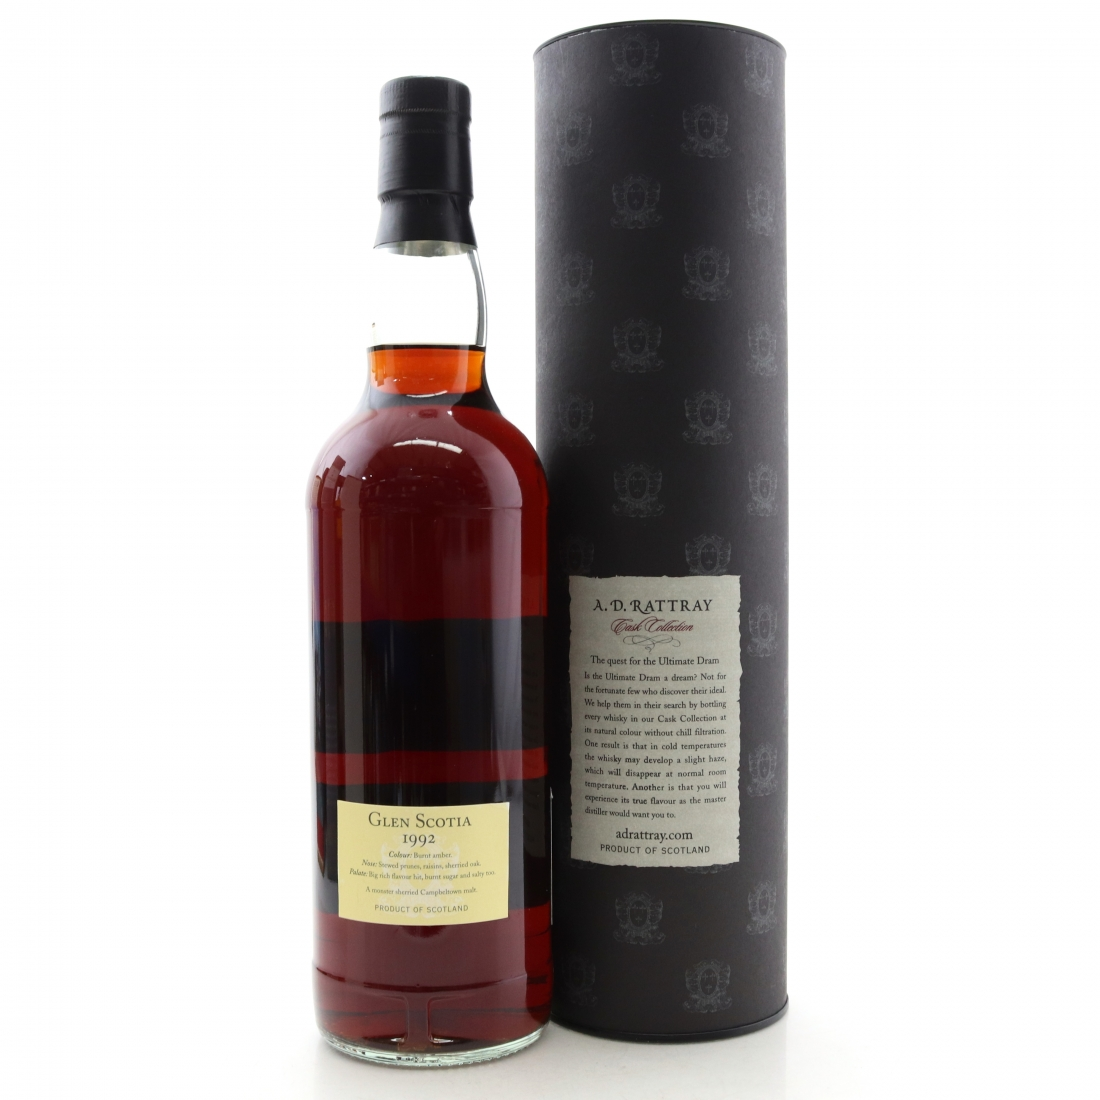 Glen Scotia 1992 A.D. Rattray 19 Year Old